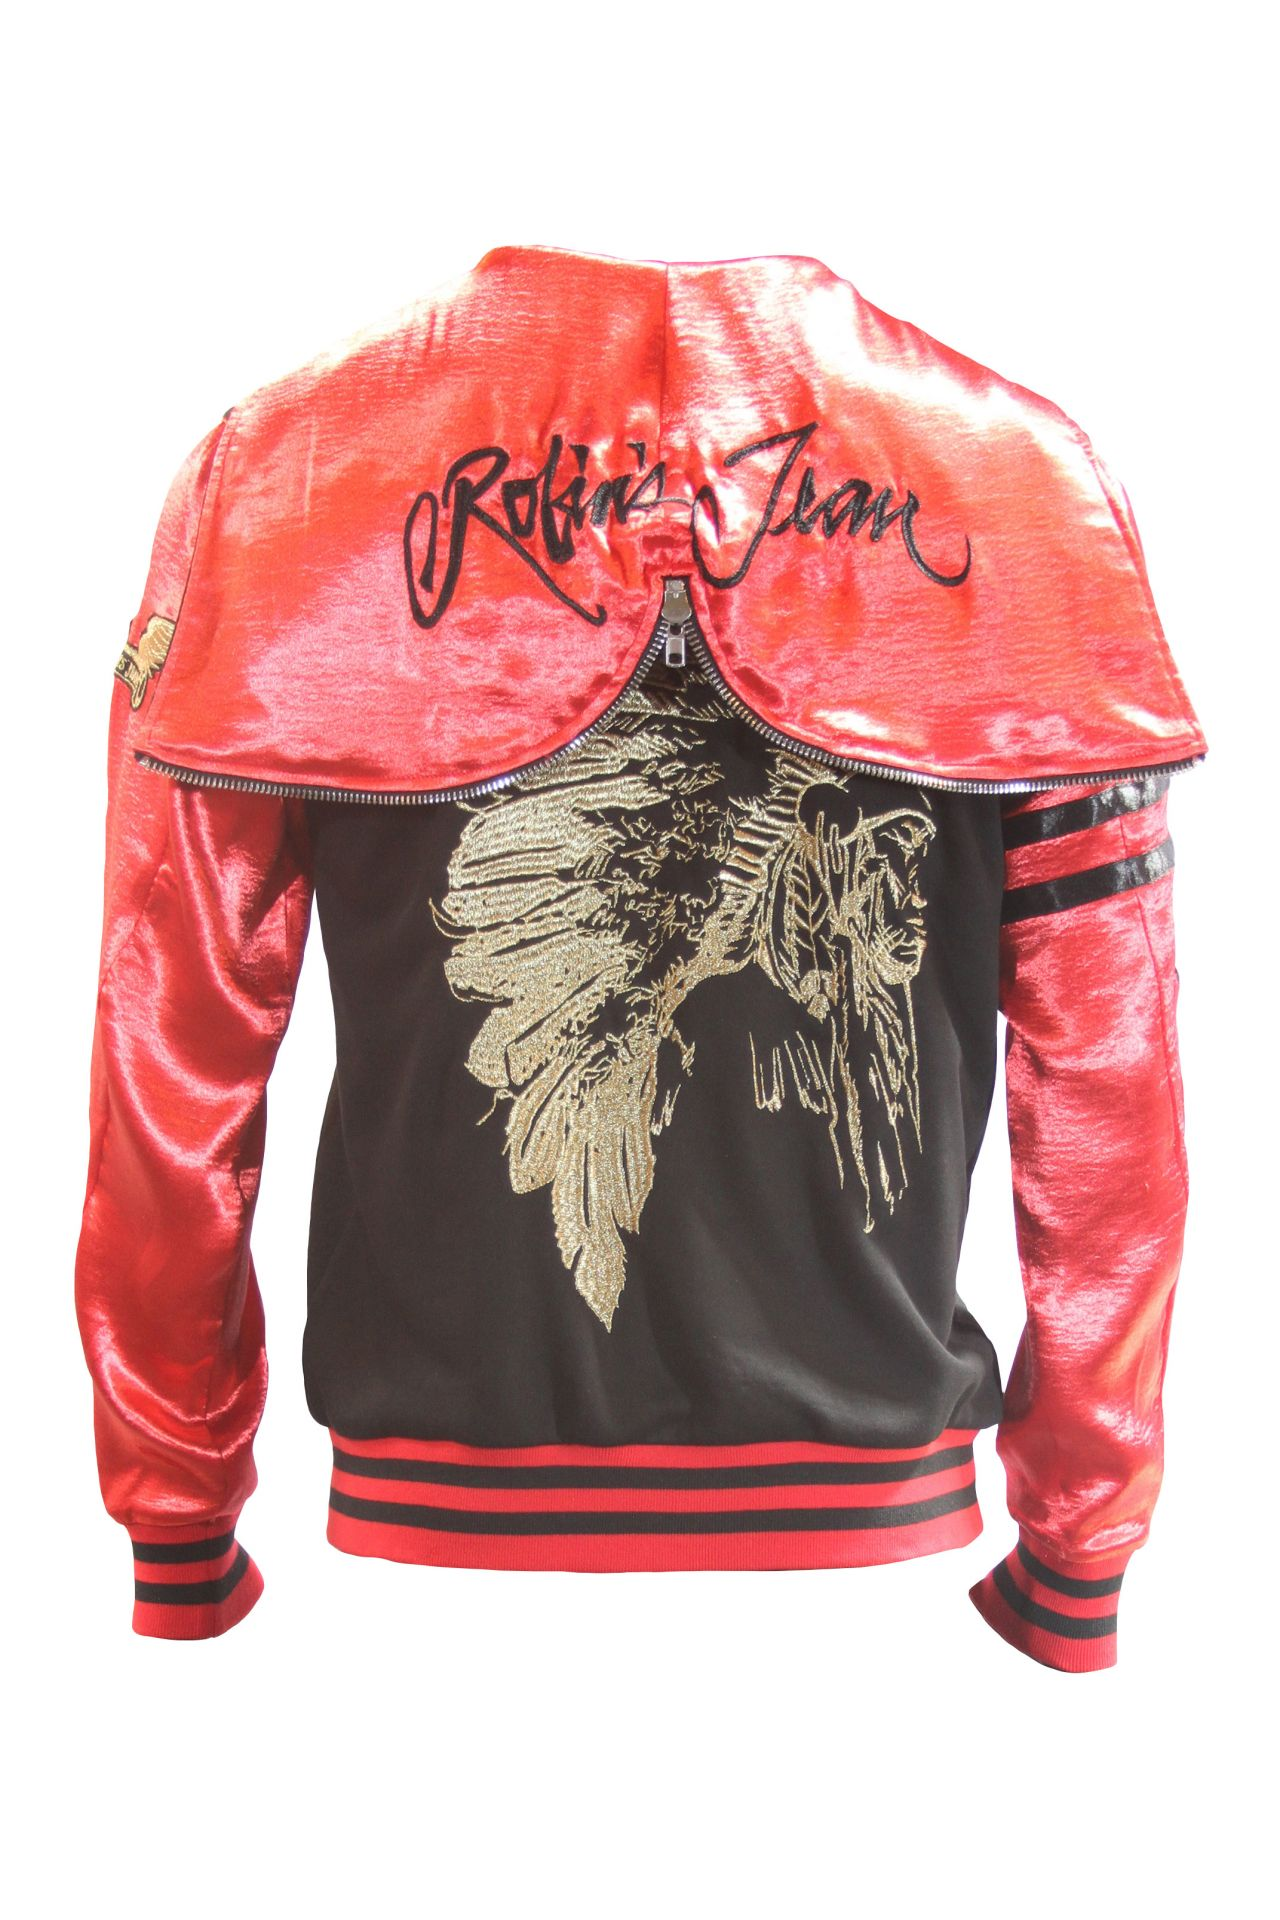 CLASSIC TRACK JACKET IN BLACK AND RED WITH CHIEF